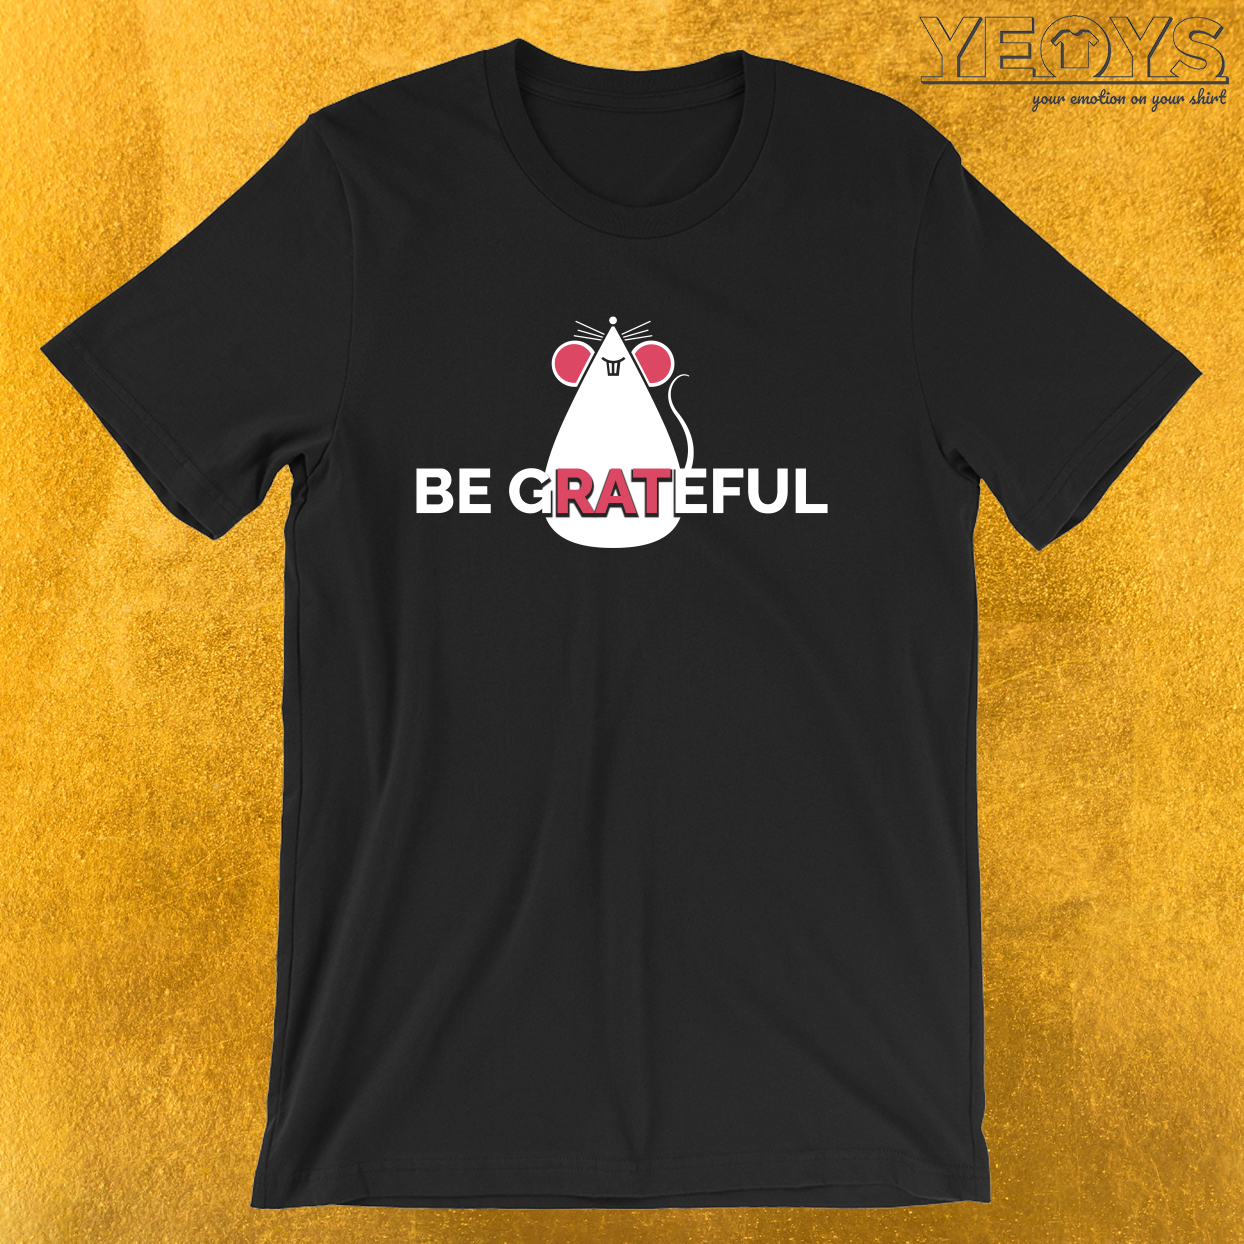 Be Grateful – Rat Pun Tee